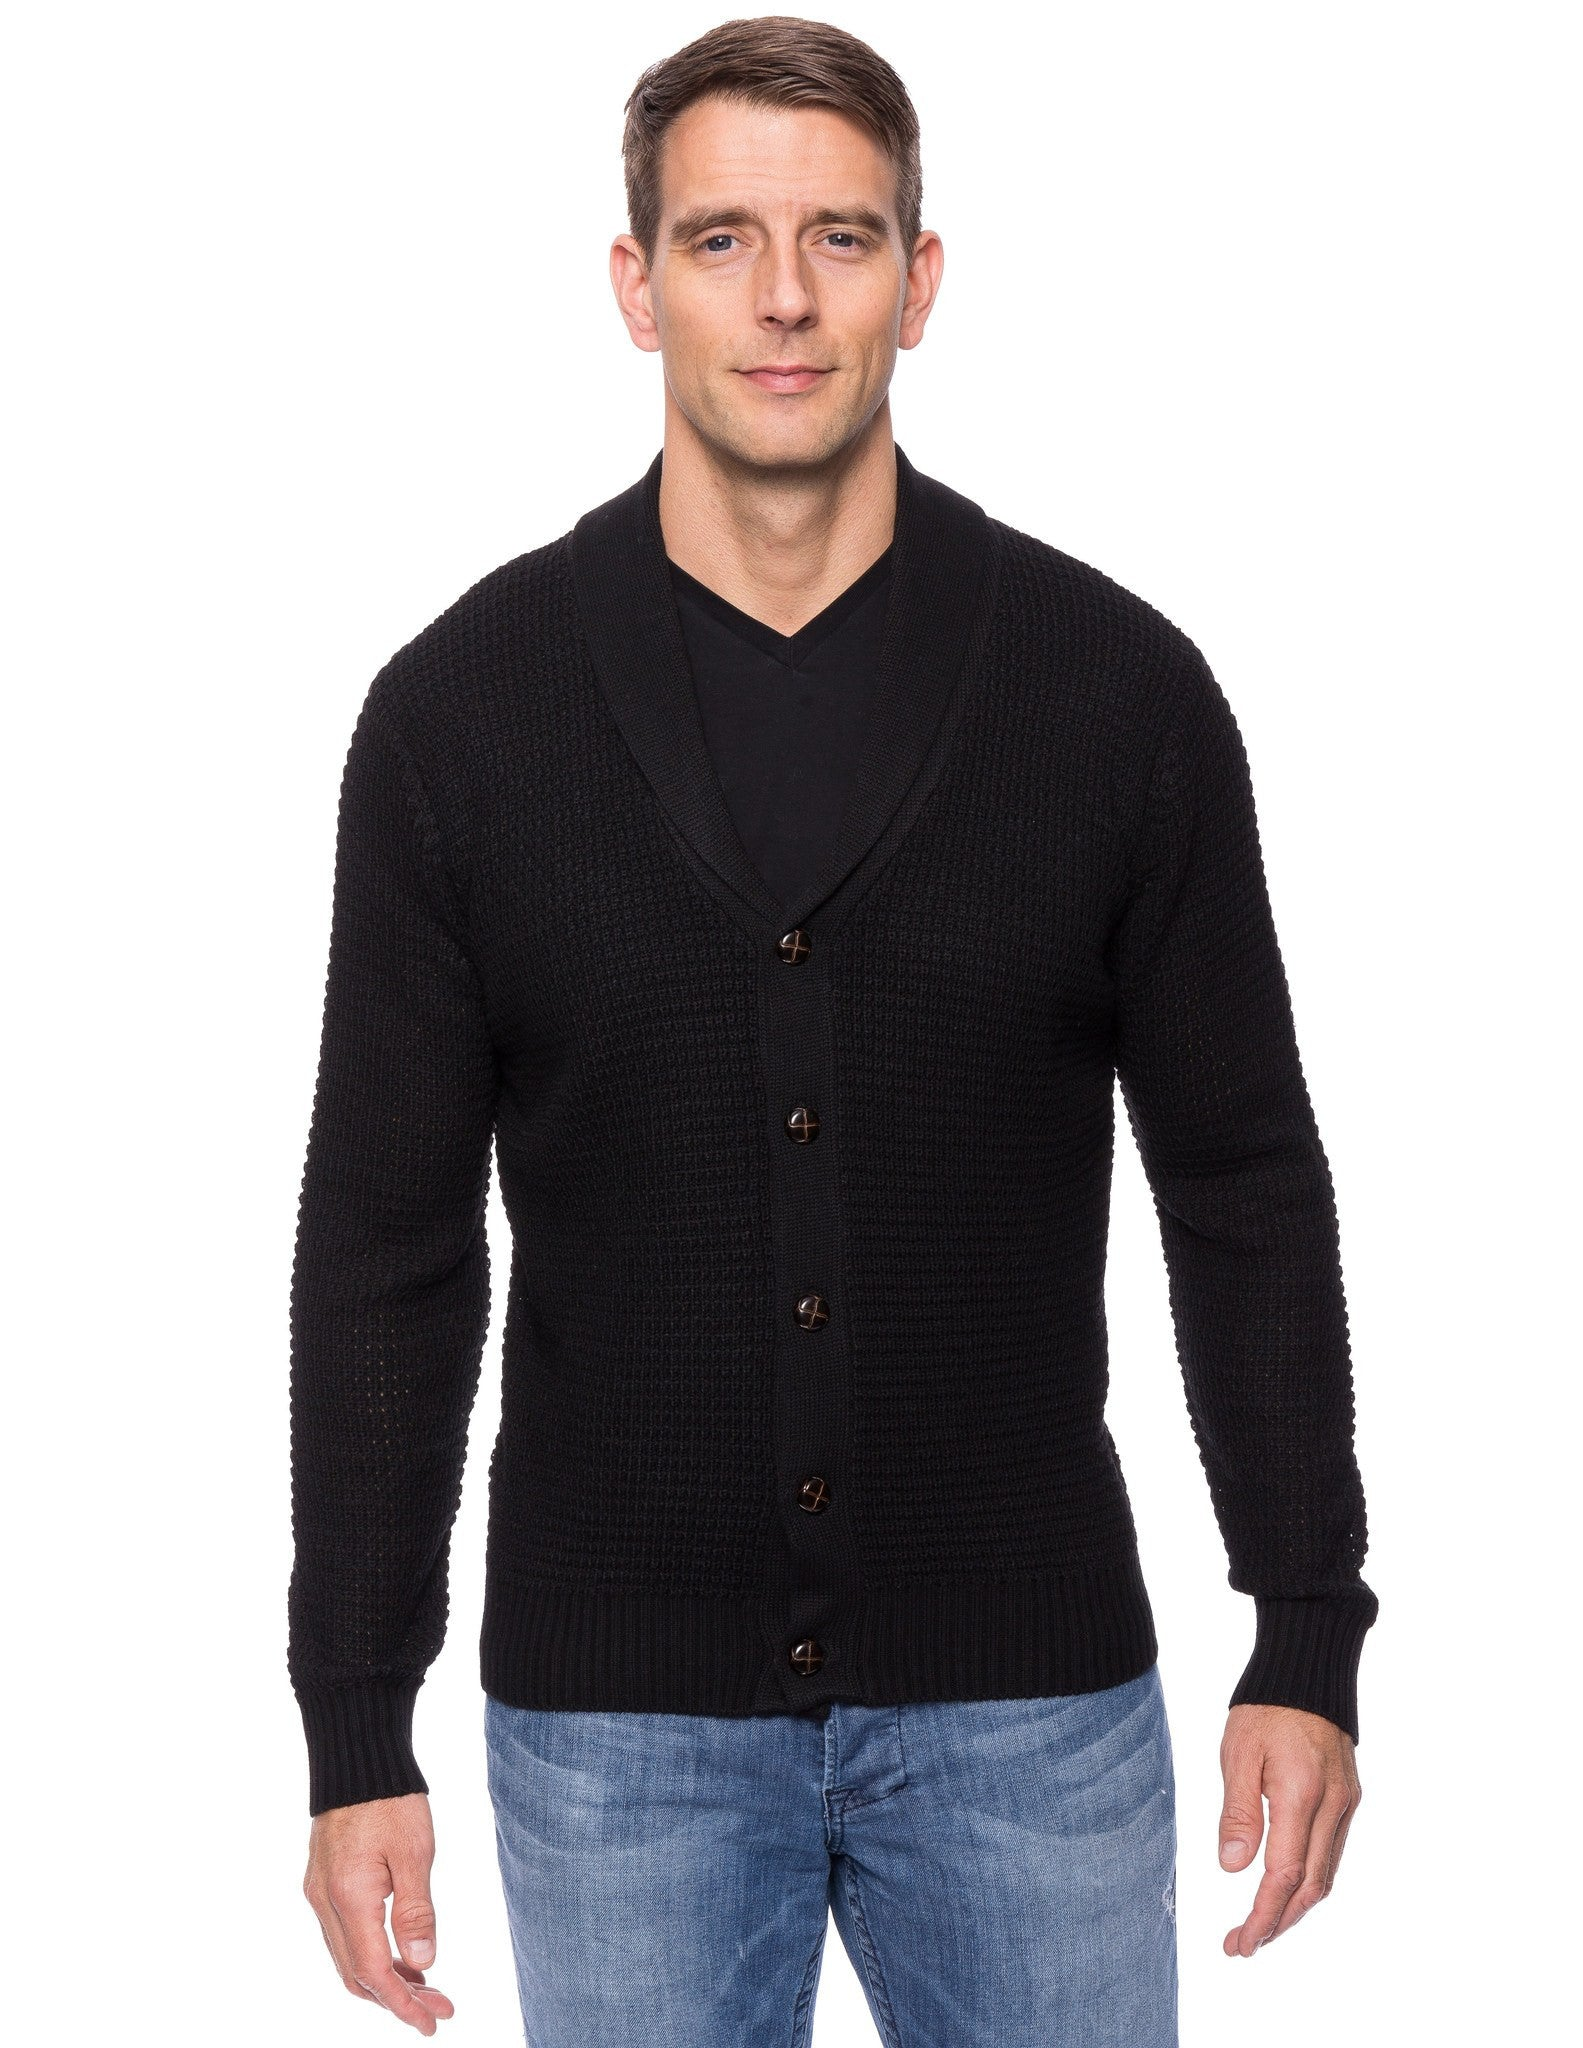 Wool Blend Shawl Collar Cardigan in Waffle Stitch - Black